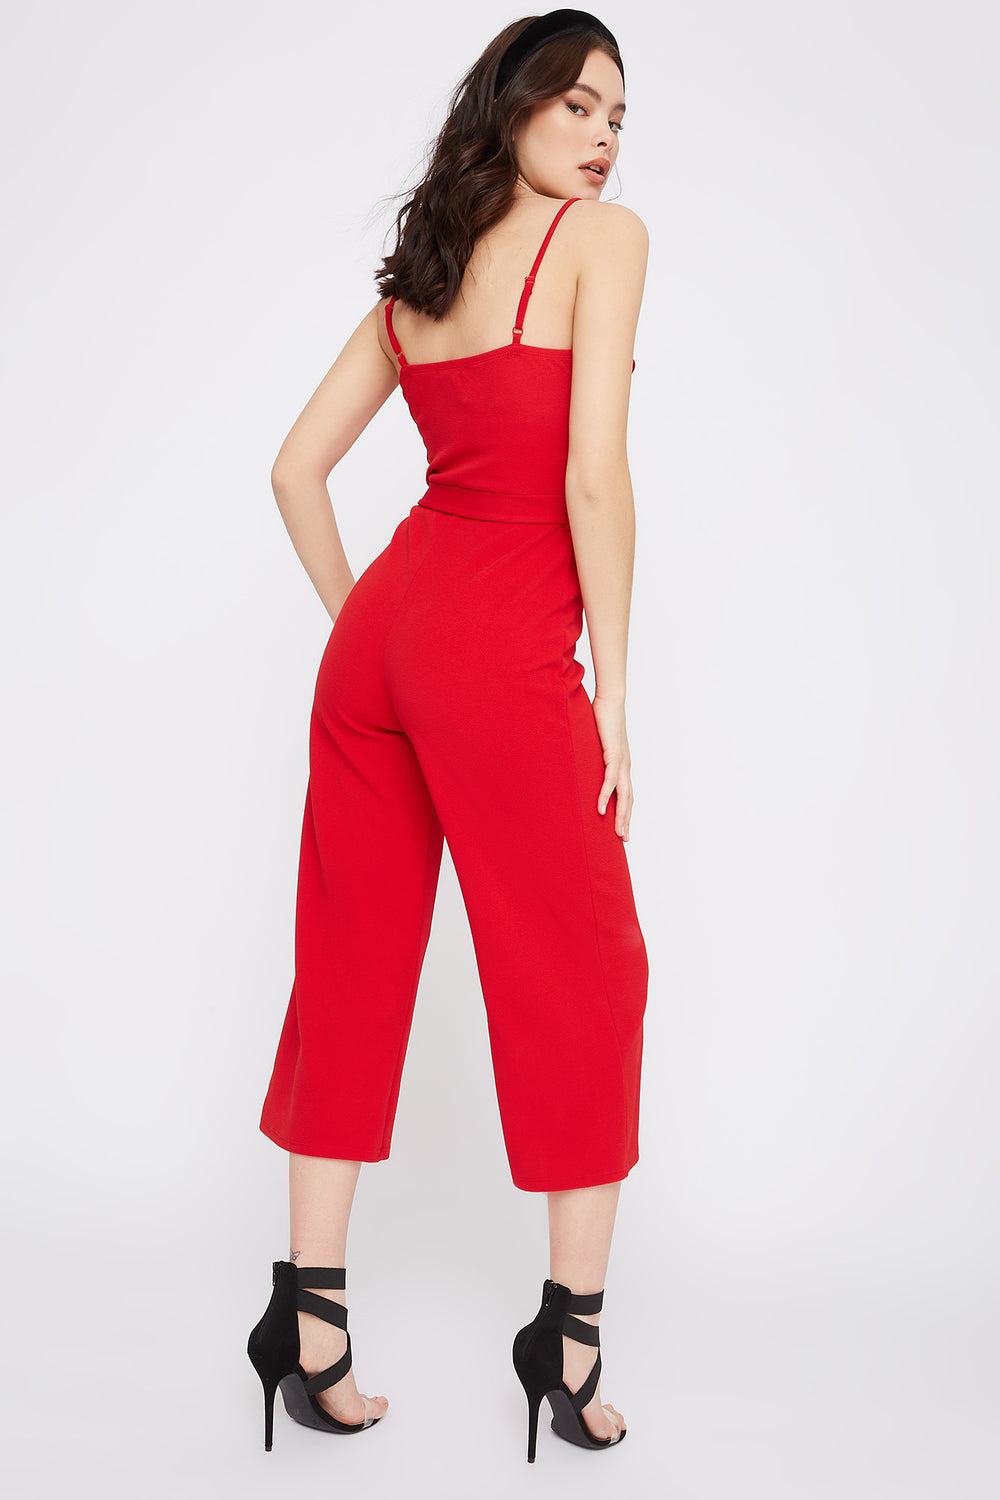 Ruffle Self Tie Culotte Jumpsuit Red